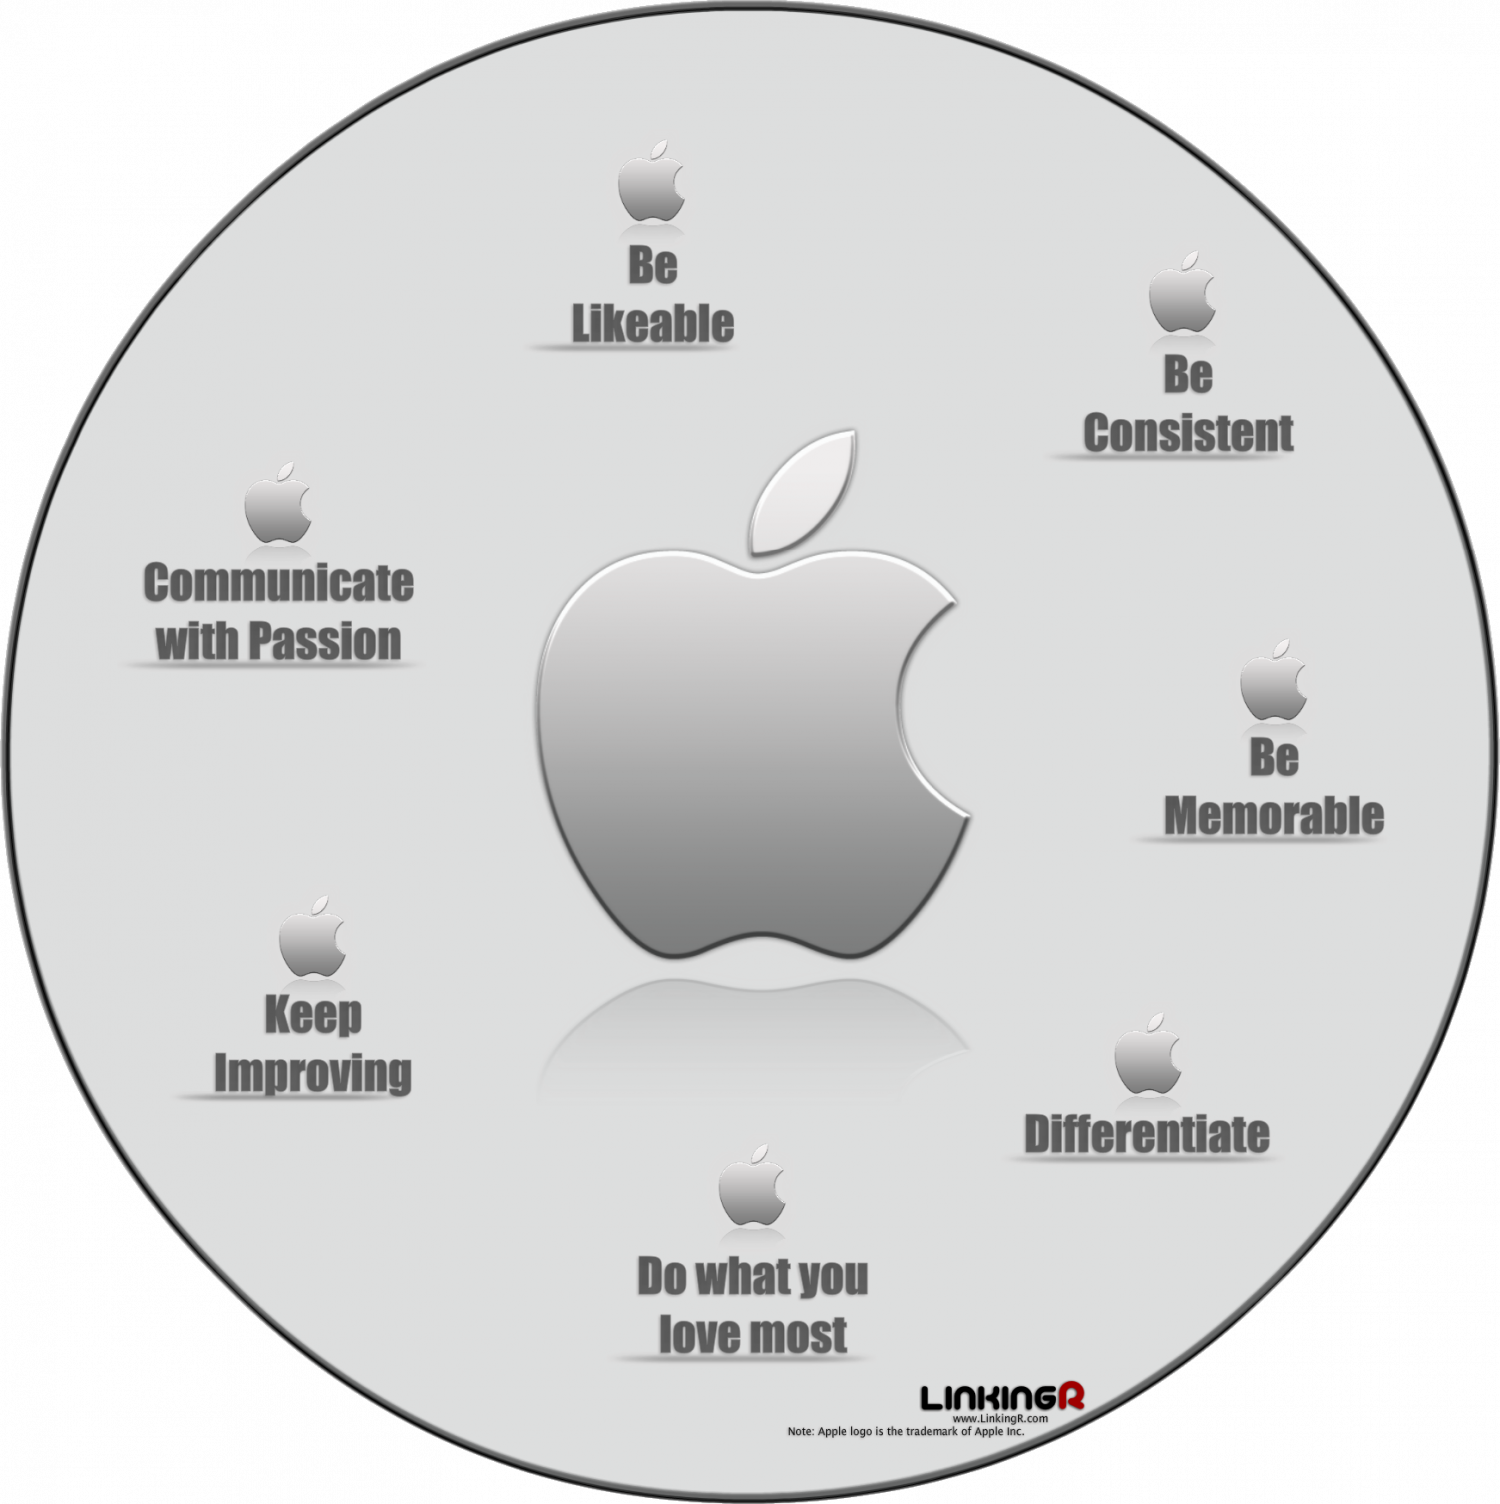 7 Personal Branding Tips from Apple Infographic